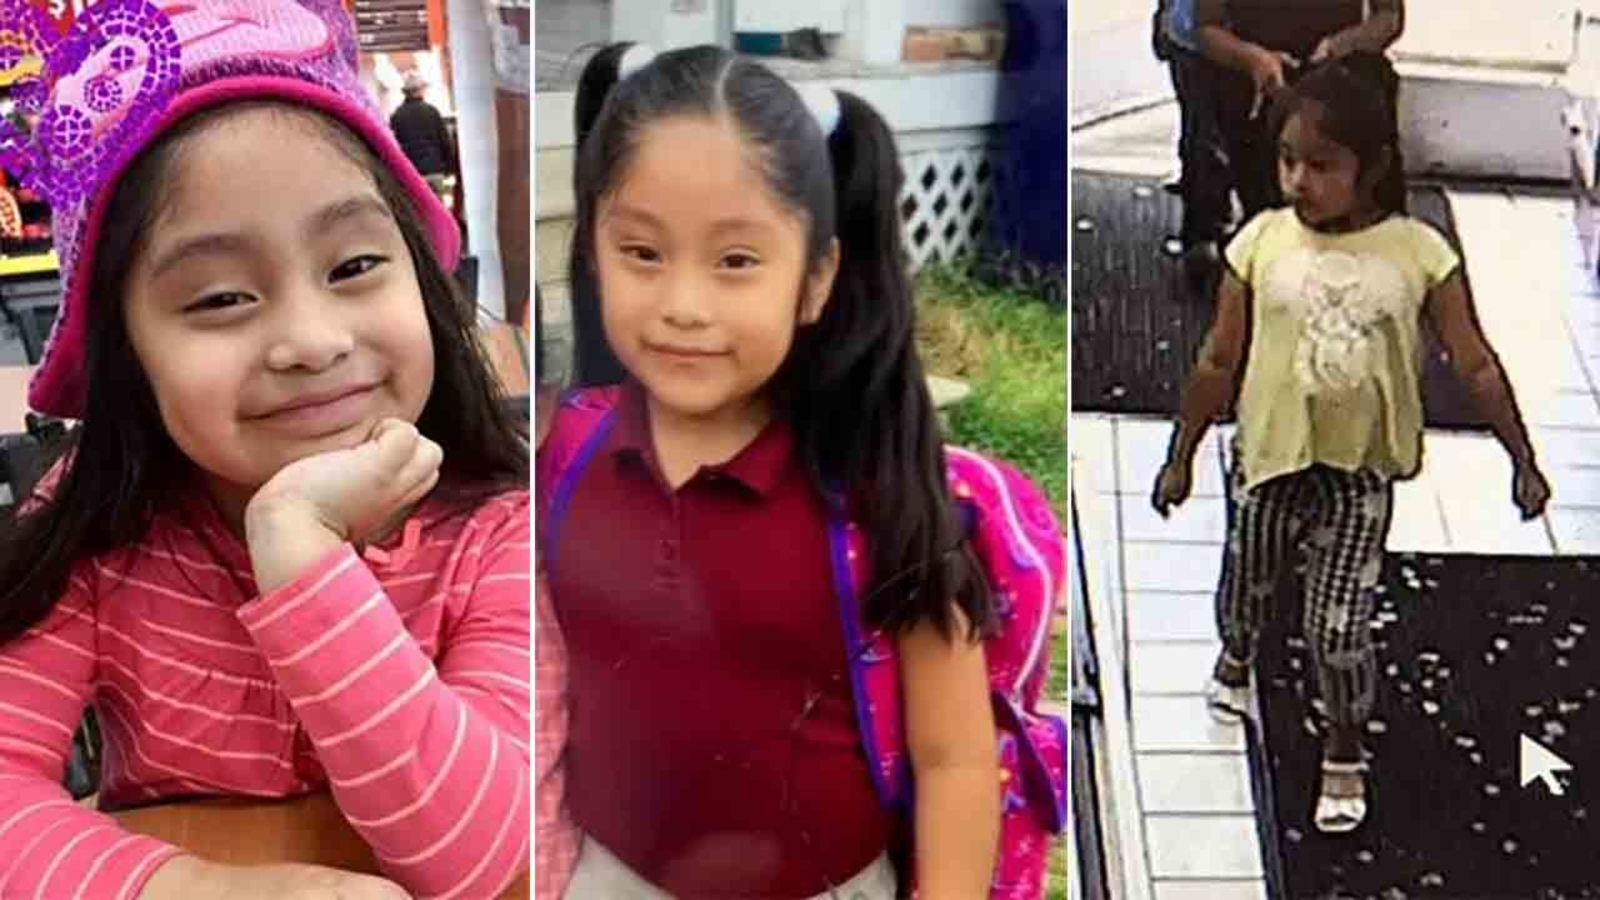 Amber Alert New Jersey New Jersey Girl Dulce Maria Alavez Missing For 6 Days As Search Continues 6abc Philadelphia